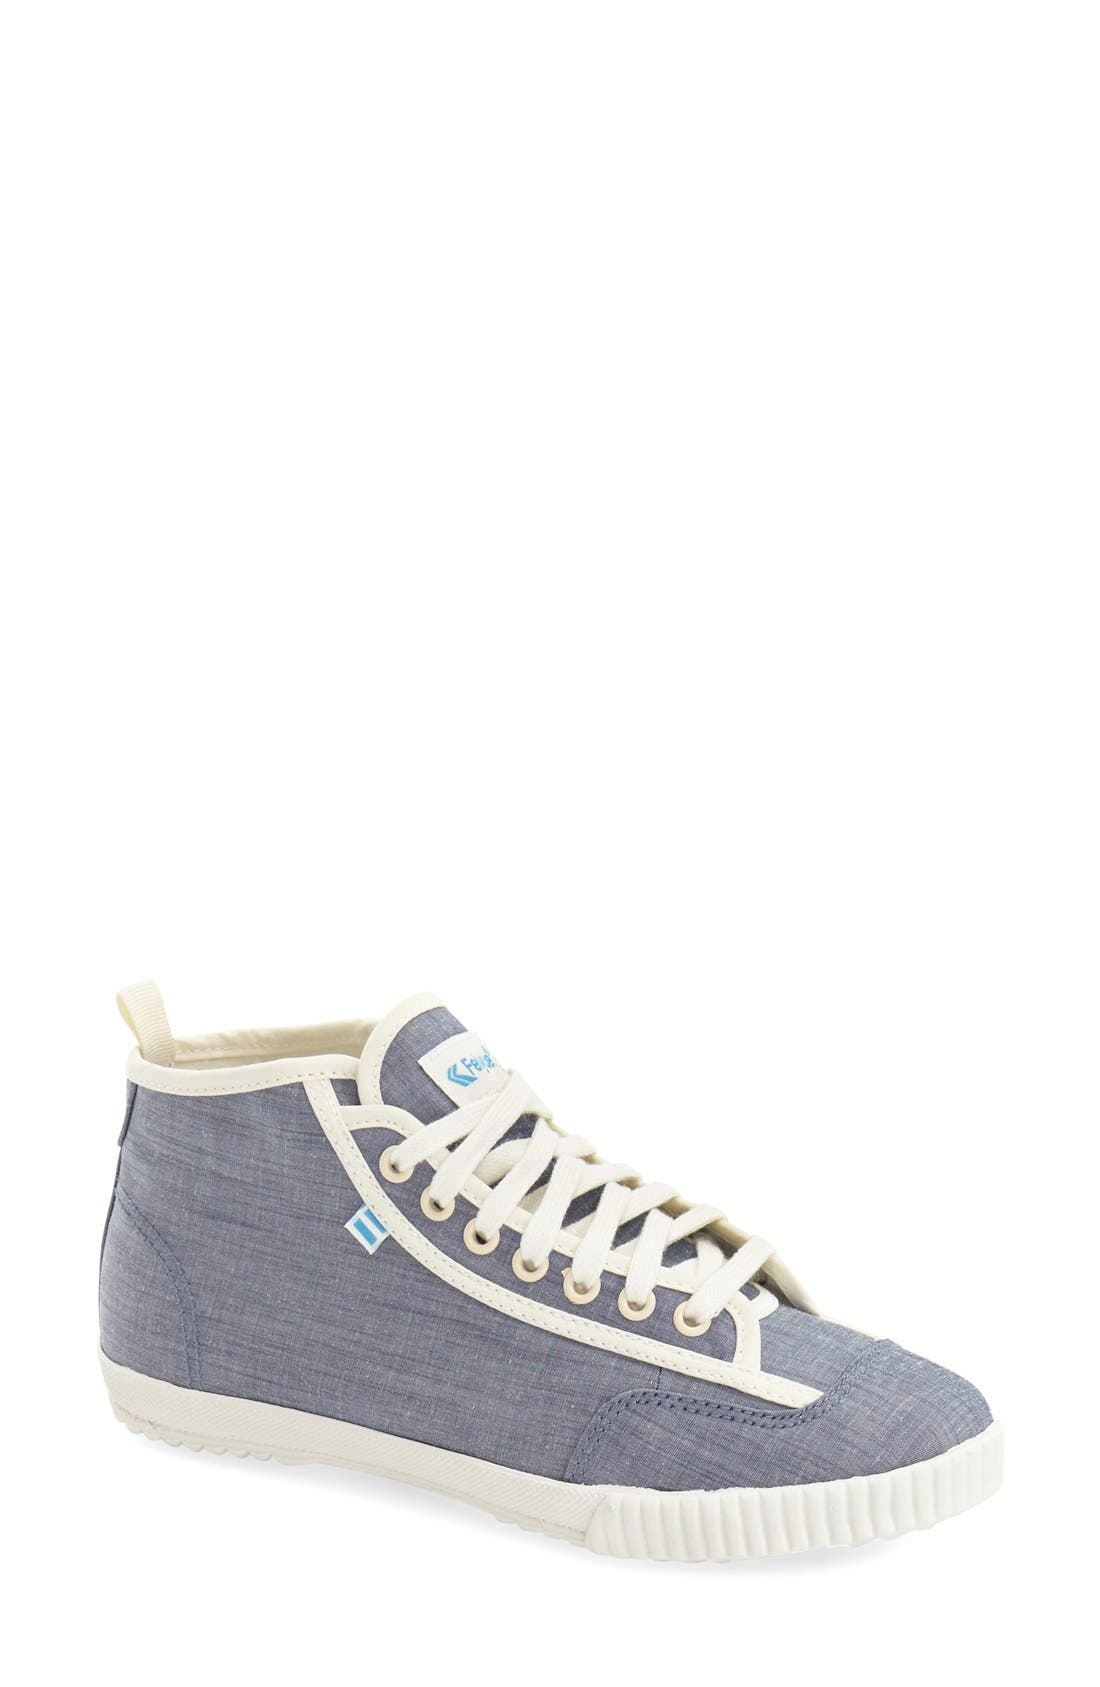 FEIYUE. 'Candice' High Top Sneaker